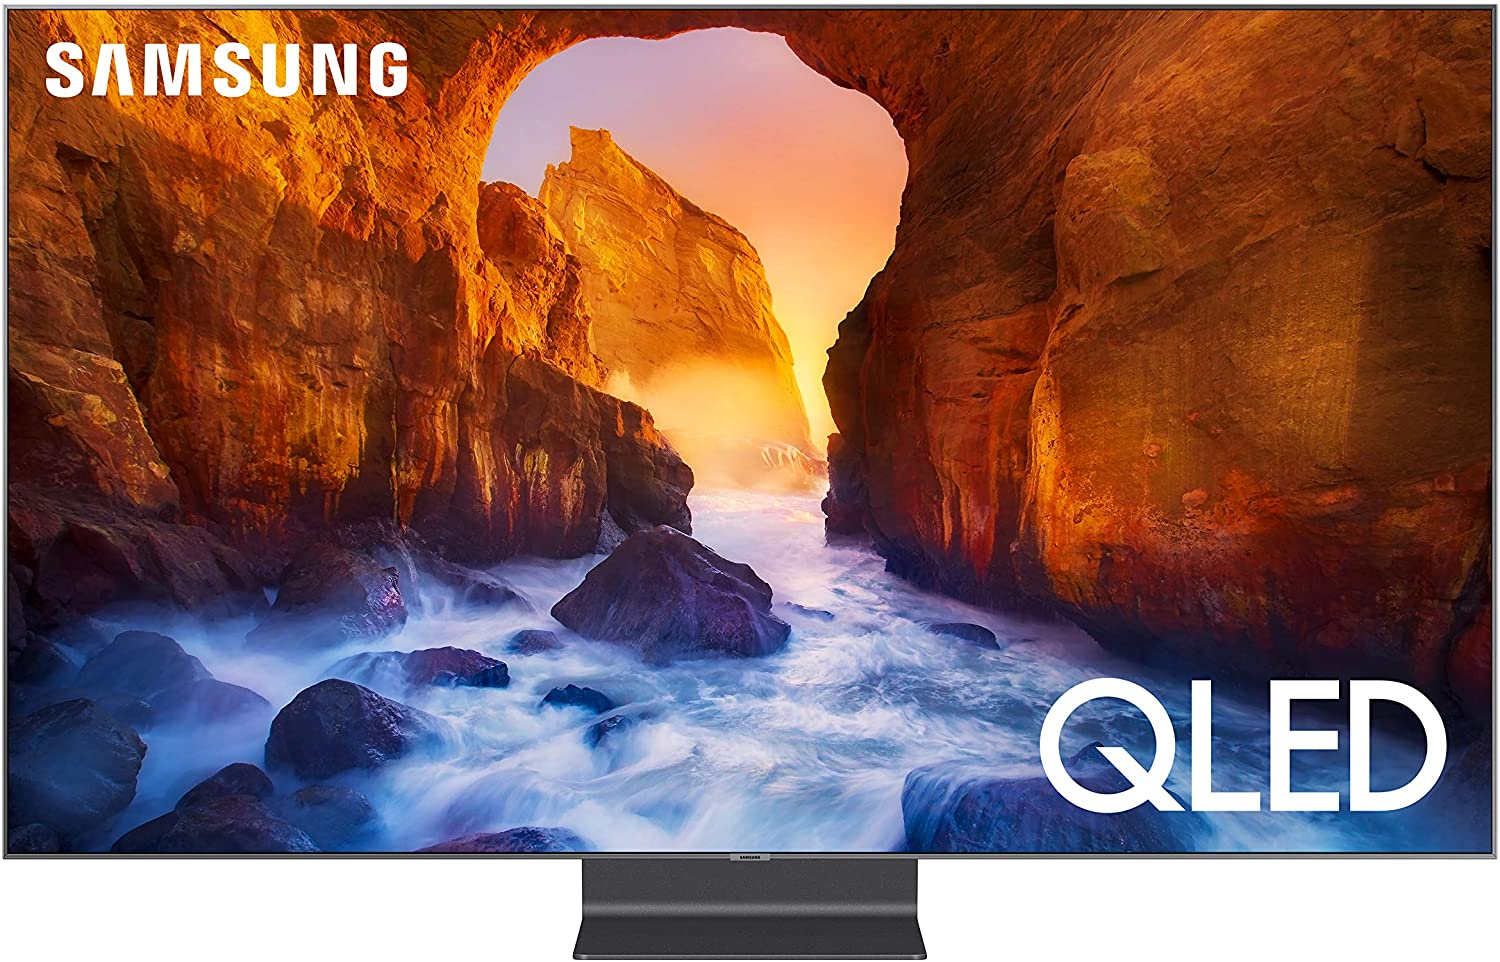 Samsung Q90 Series 82-Inch Smart TV, QLED 4K UHD with HDR and Alexa compatibility 2019 model